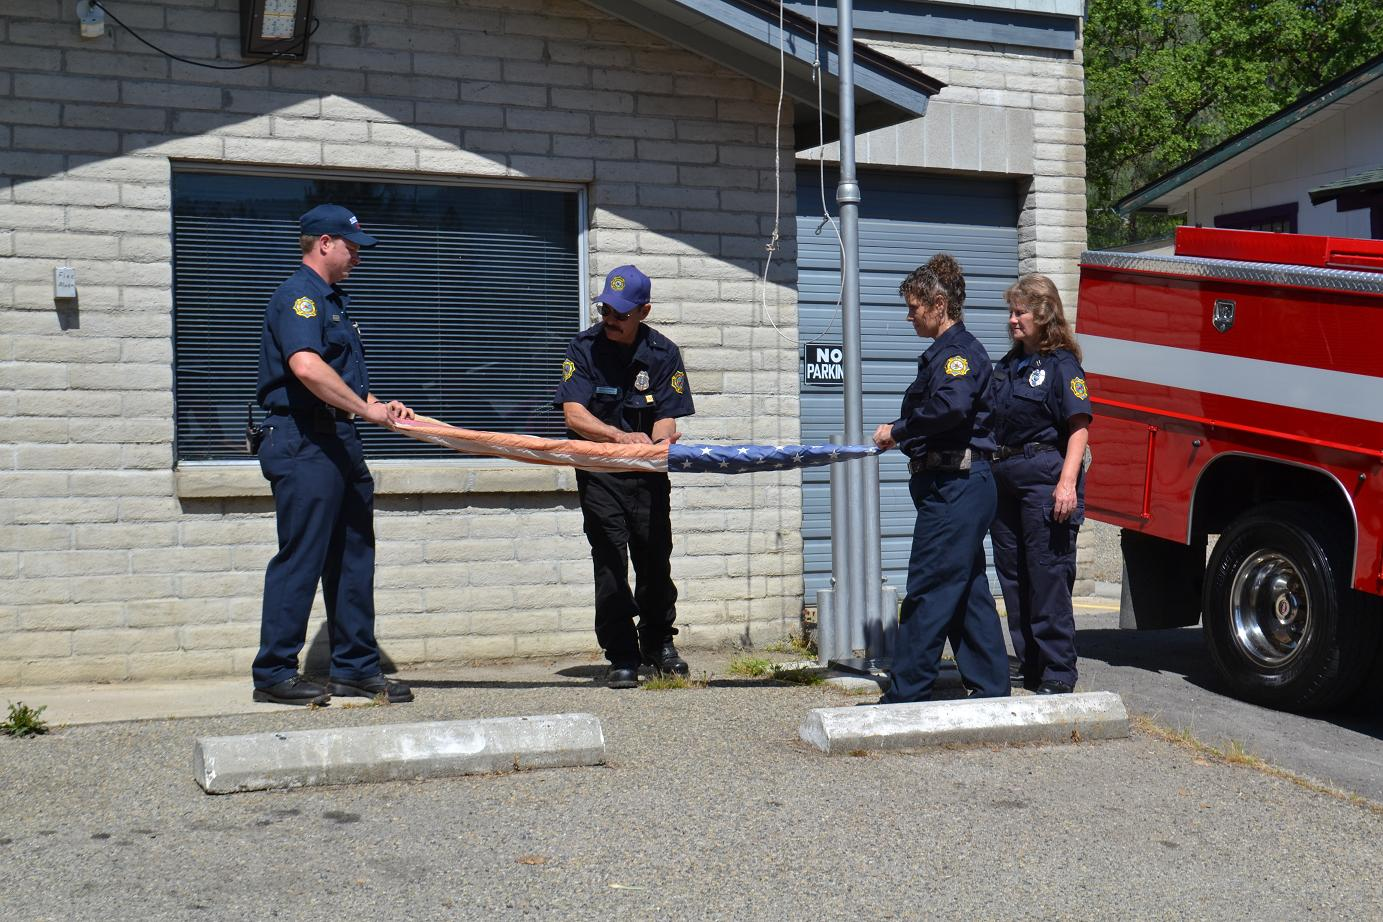 Folding the old flag at Station 11